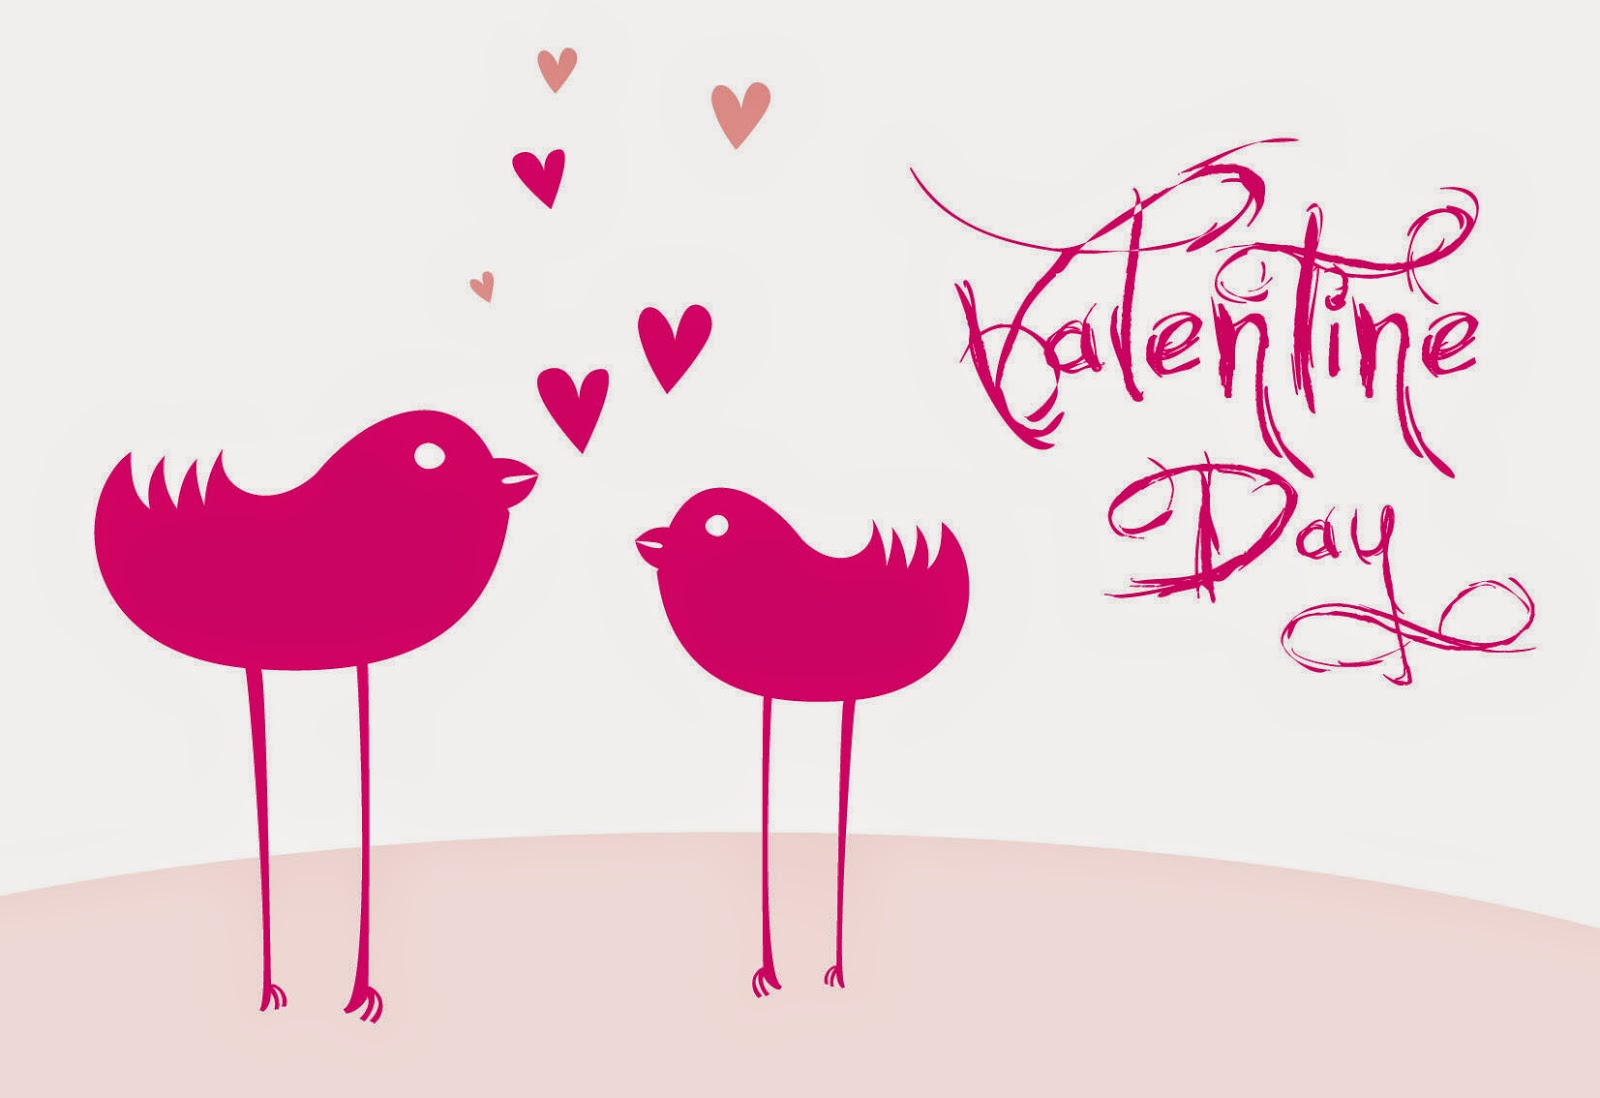 Wallpaper Lucu Dan Unik Bergerak Happy Valentine Day Photo